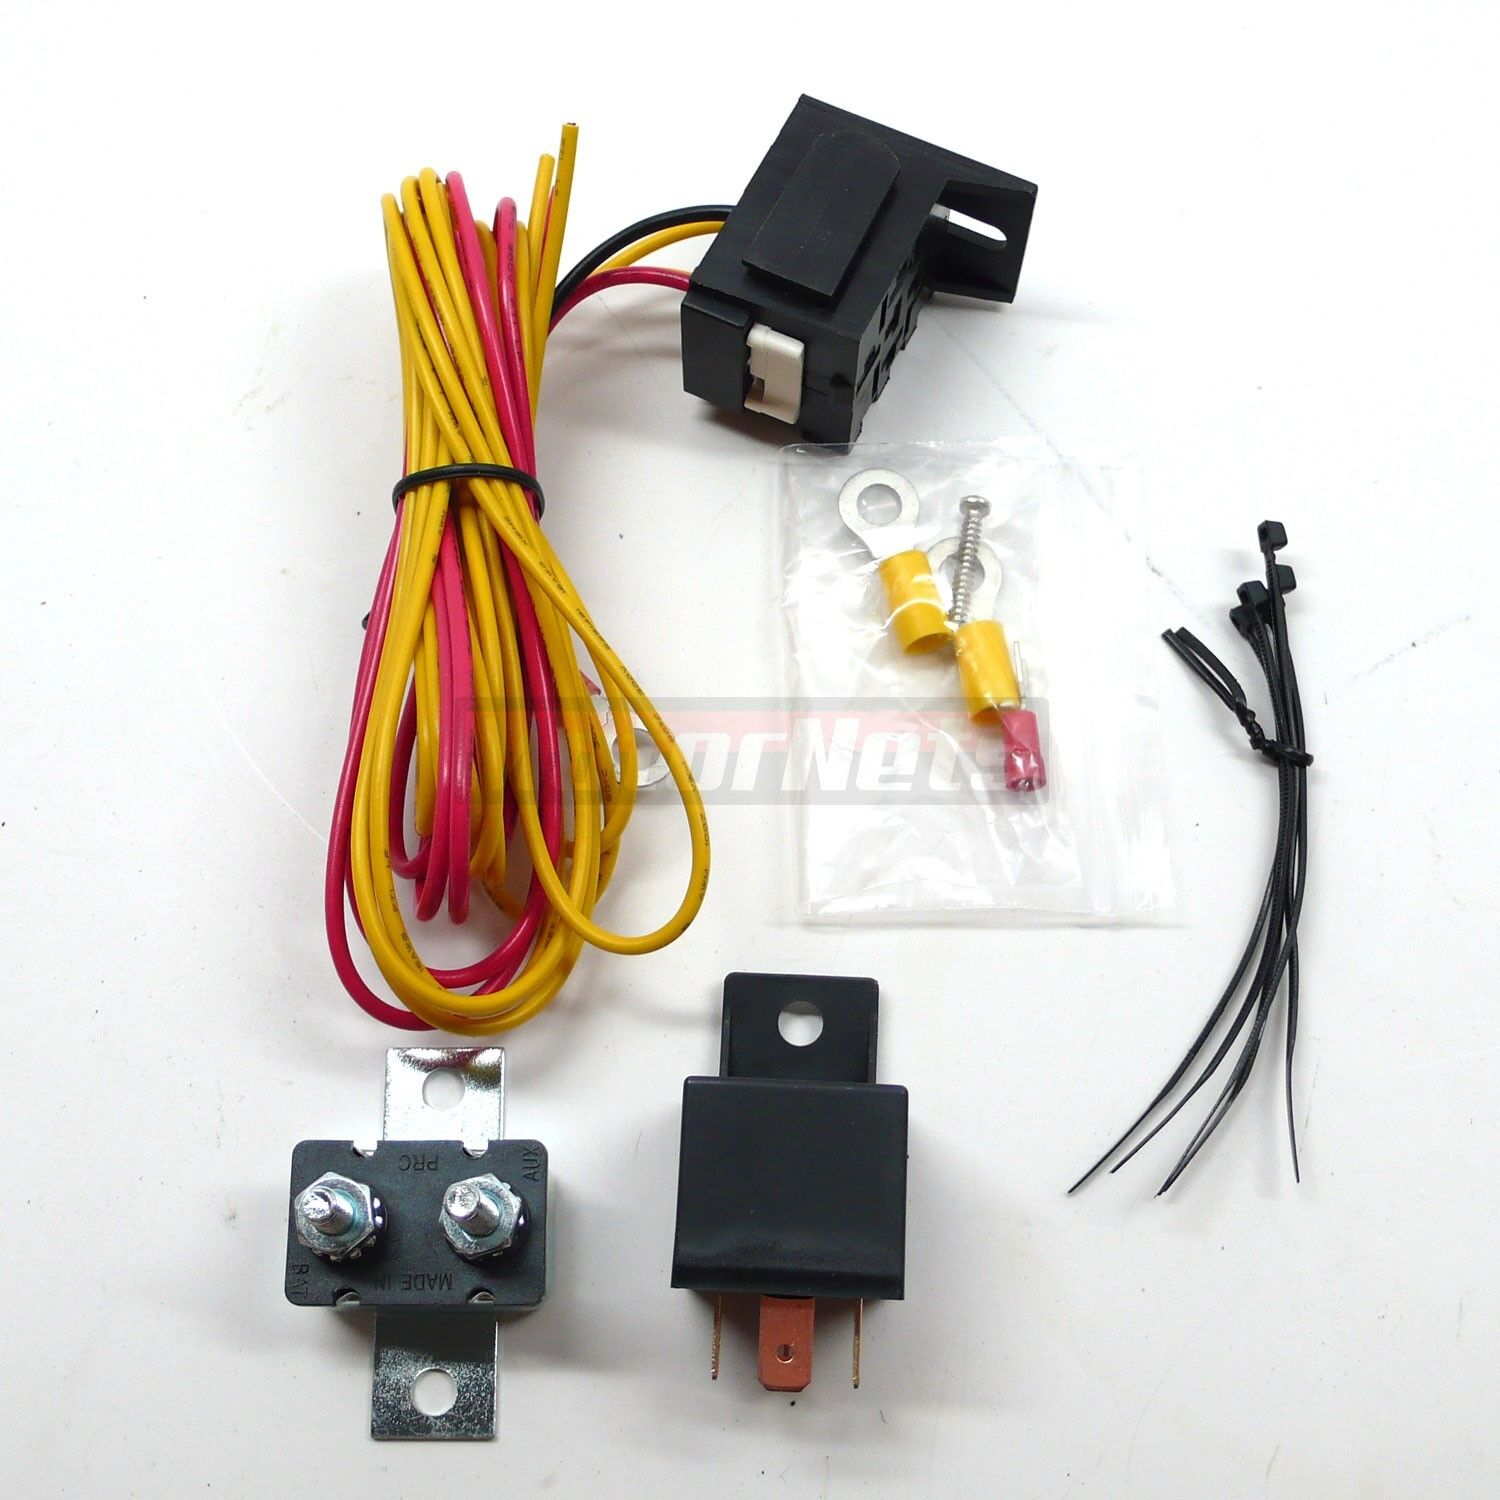 Electric Fuel Pump Relay Kit 30 Amps 12-Volts w/ Mounting Hardware on fuel pump sensor, fuel pump bulbs, map sensor wiring, fog lamp relay wiring, fuel relay switch location, starter relay wiring, fuel pump wiring kit, fuel pump hotwire, ignition coil wiring, fuel pump wiring harness, fuel tank wiring, electric fuel pump wiring, ignition switch wiring, fuel injector wiring,